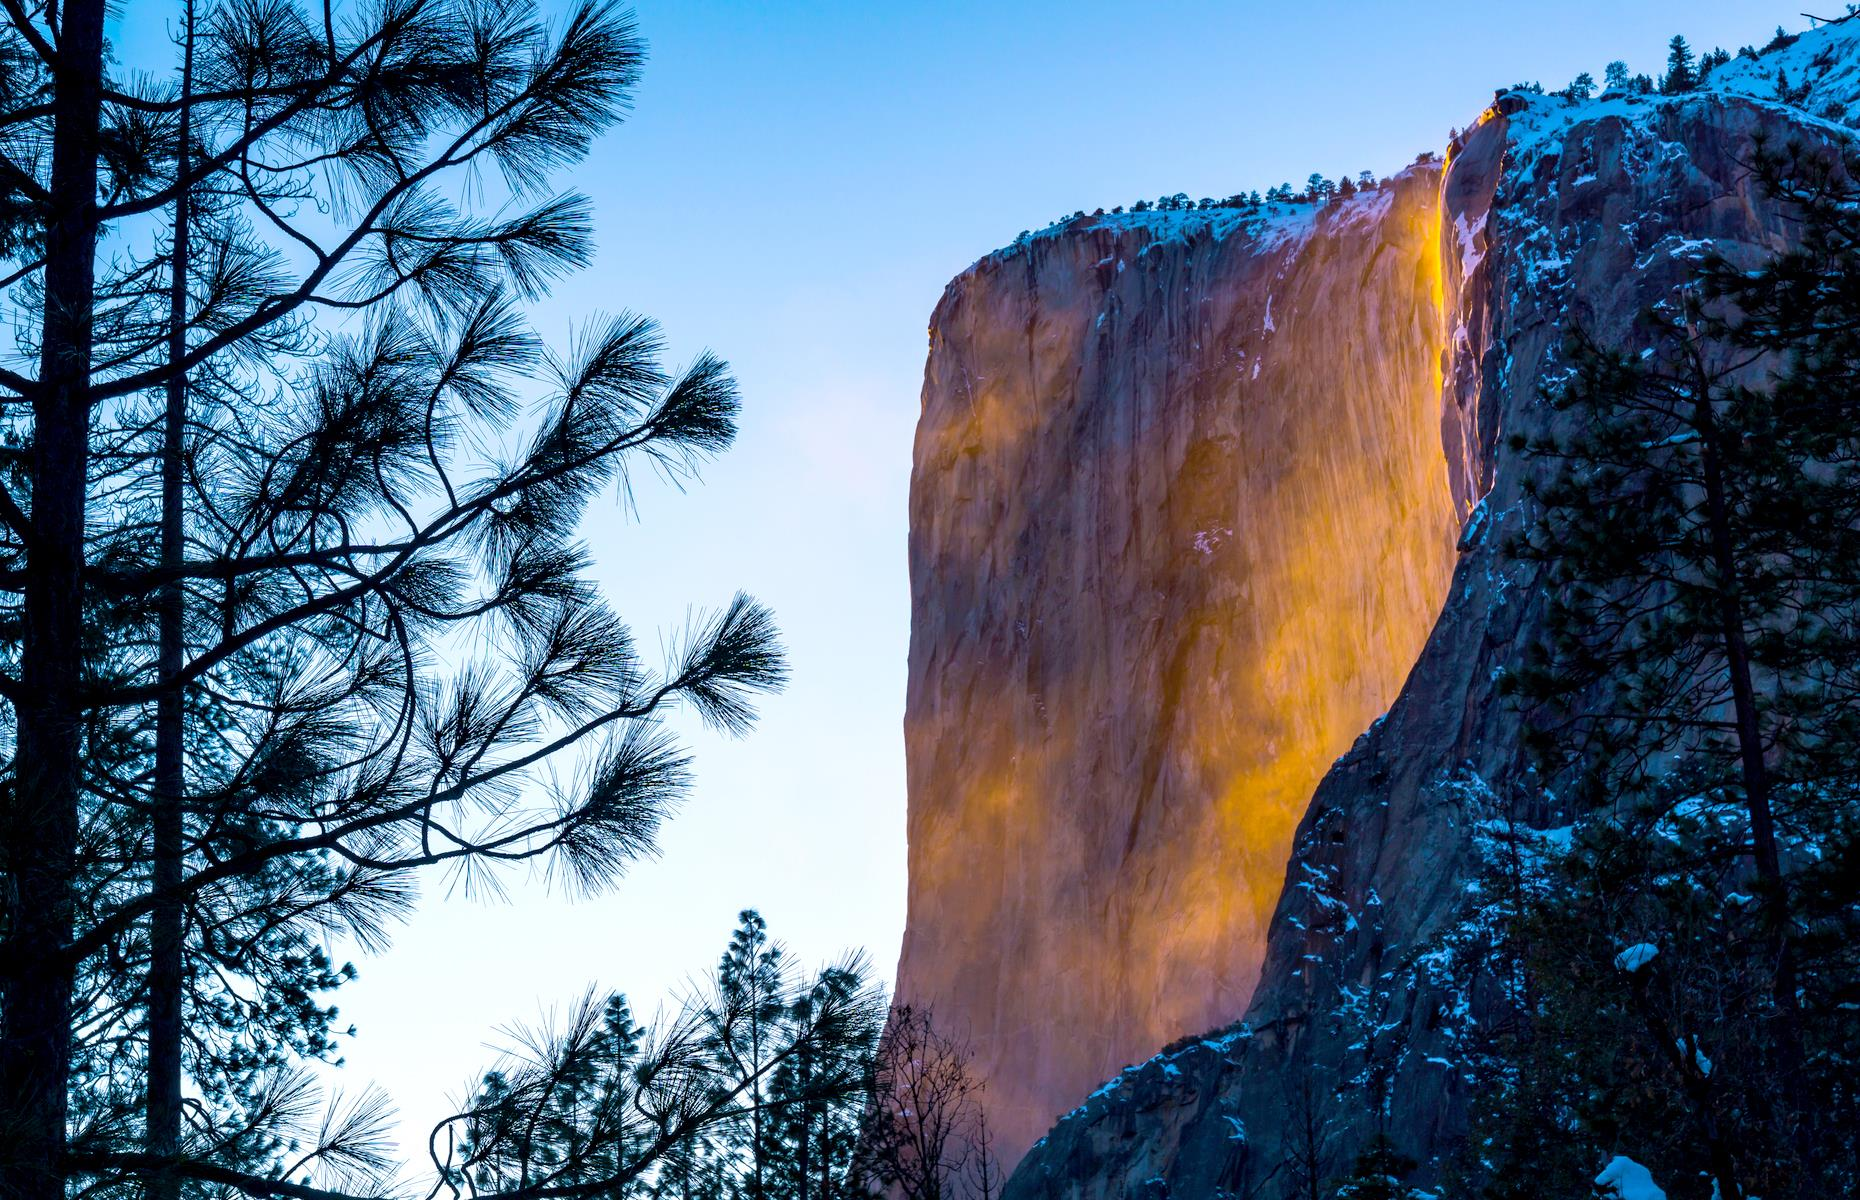 Slide 8 of 61: For much of the year, Horsetail Fall, which cascades over the eastern side of El Capitan in Yosemite National Park, looks like any other waterfall. But, come February, something magical happens. On clear nights, when the sun is setting and the light strikes right, the waterfall takes on a burning orange glow and spills over the mountain face like lava. Various hiking trails wind towards the falls, each one at least a mile in length.